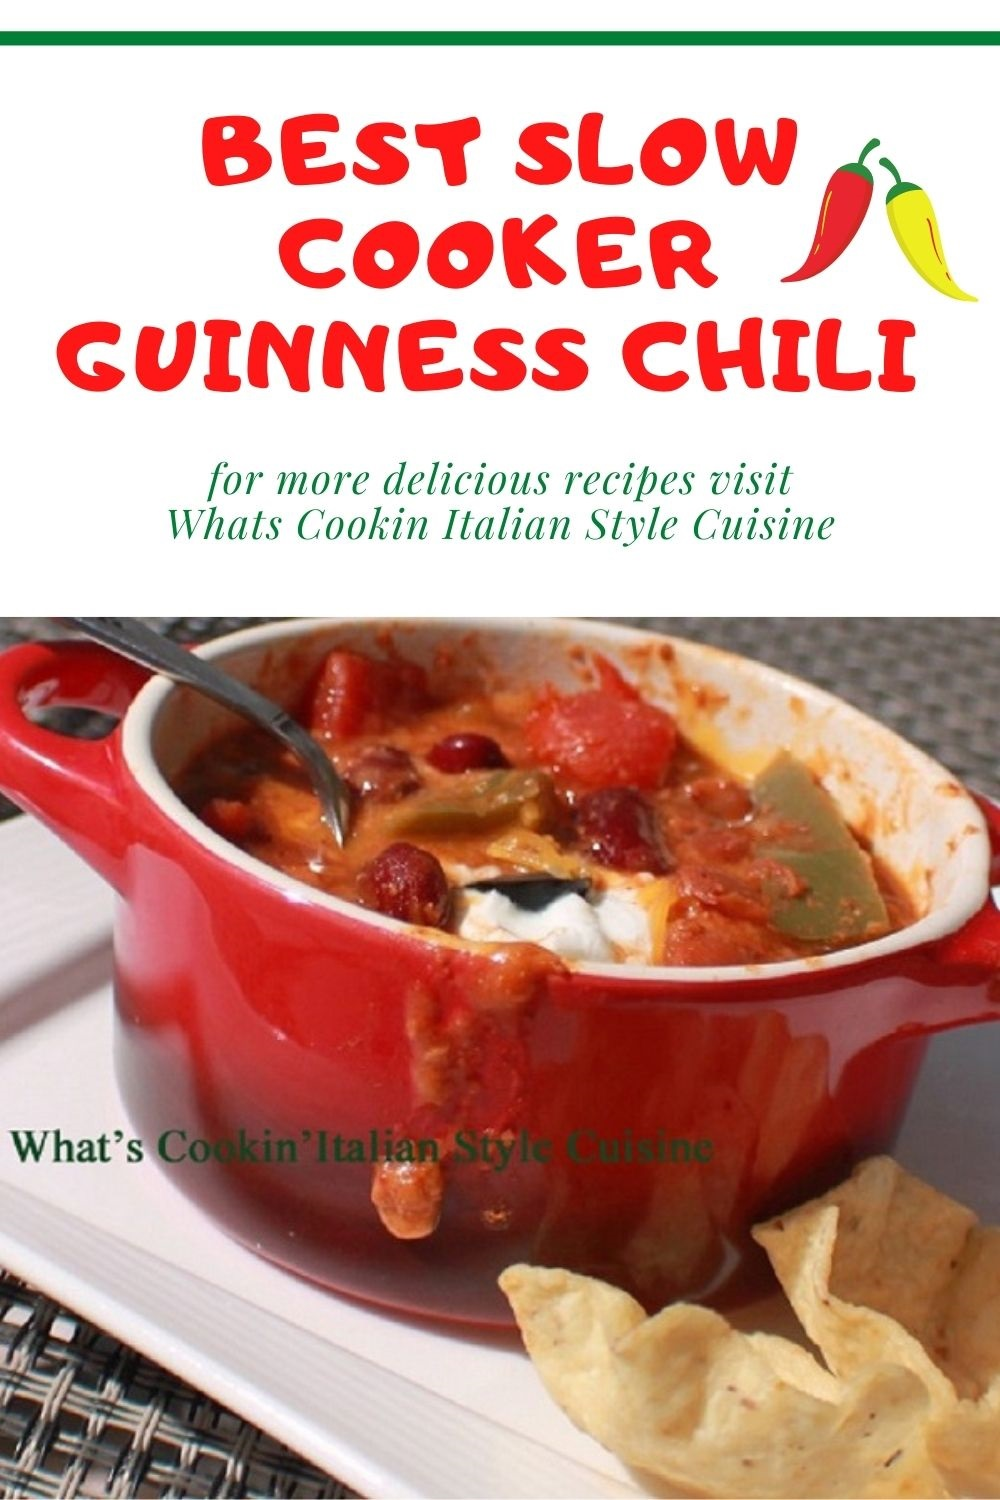 this is a red pot of Guinness Chili